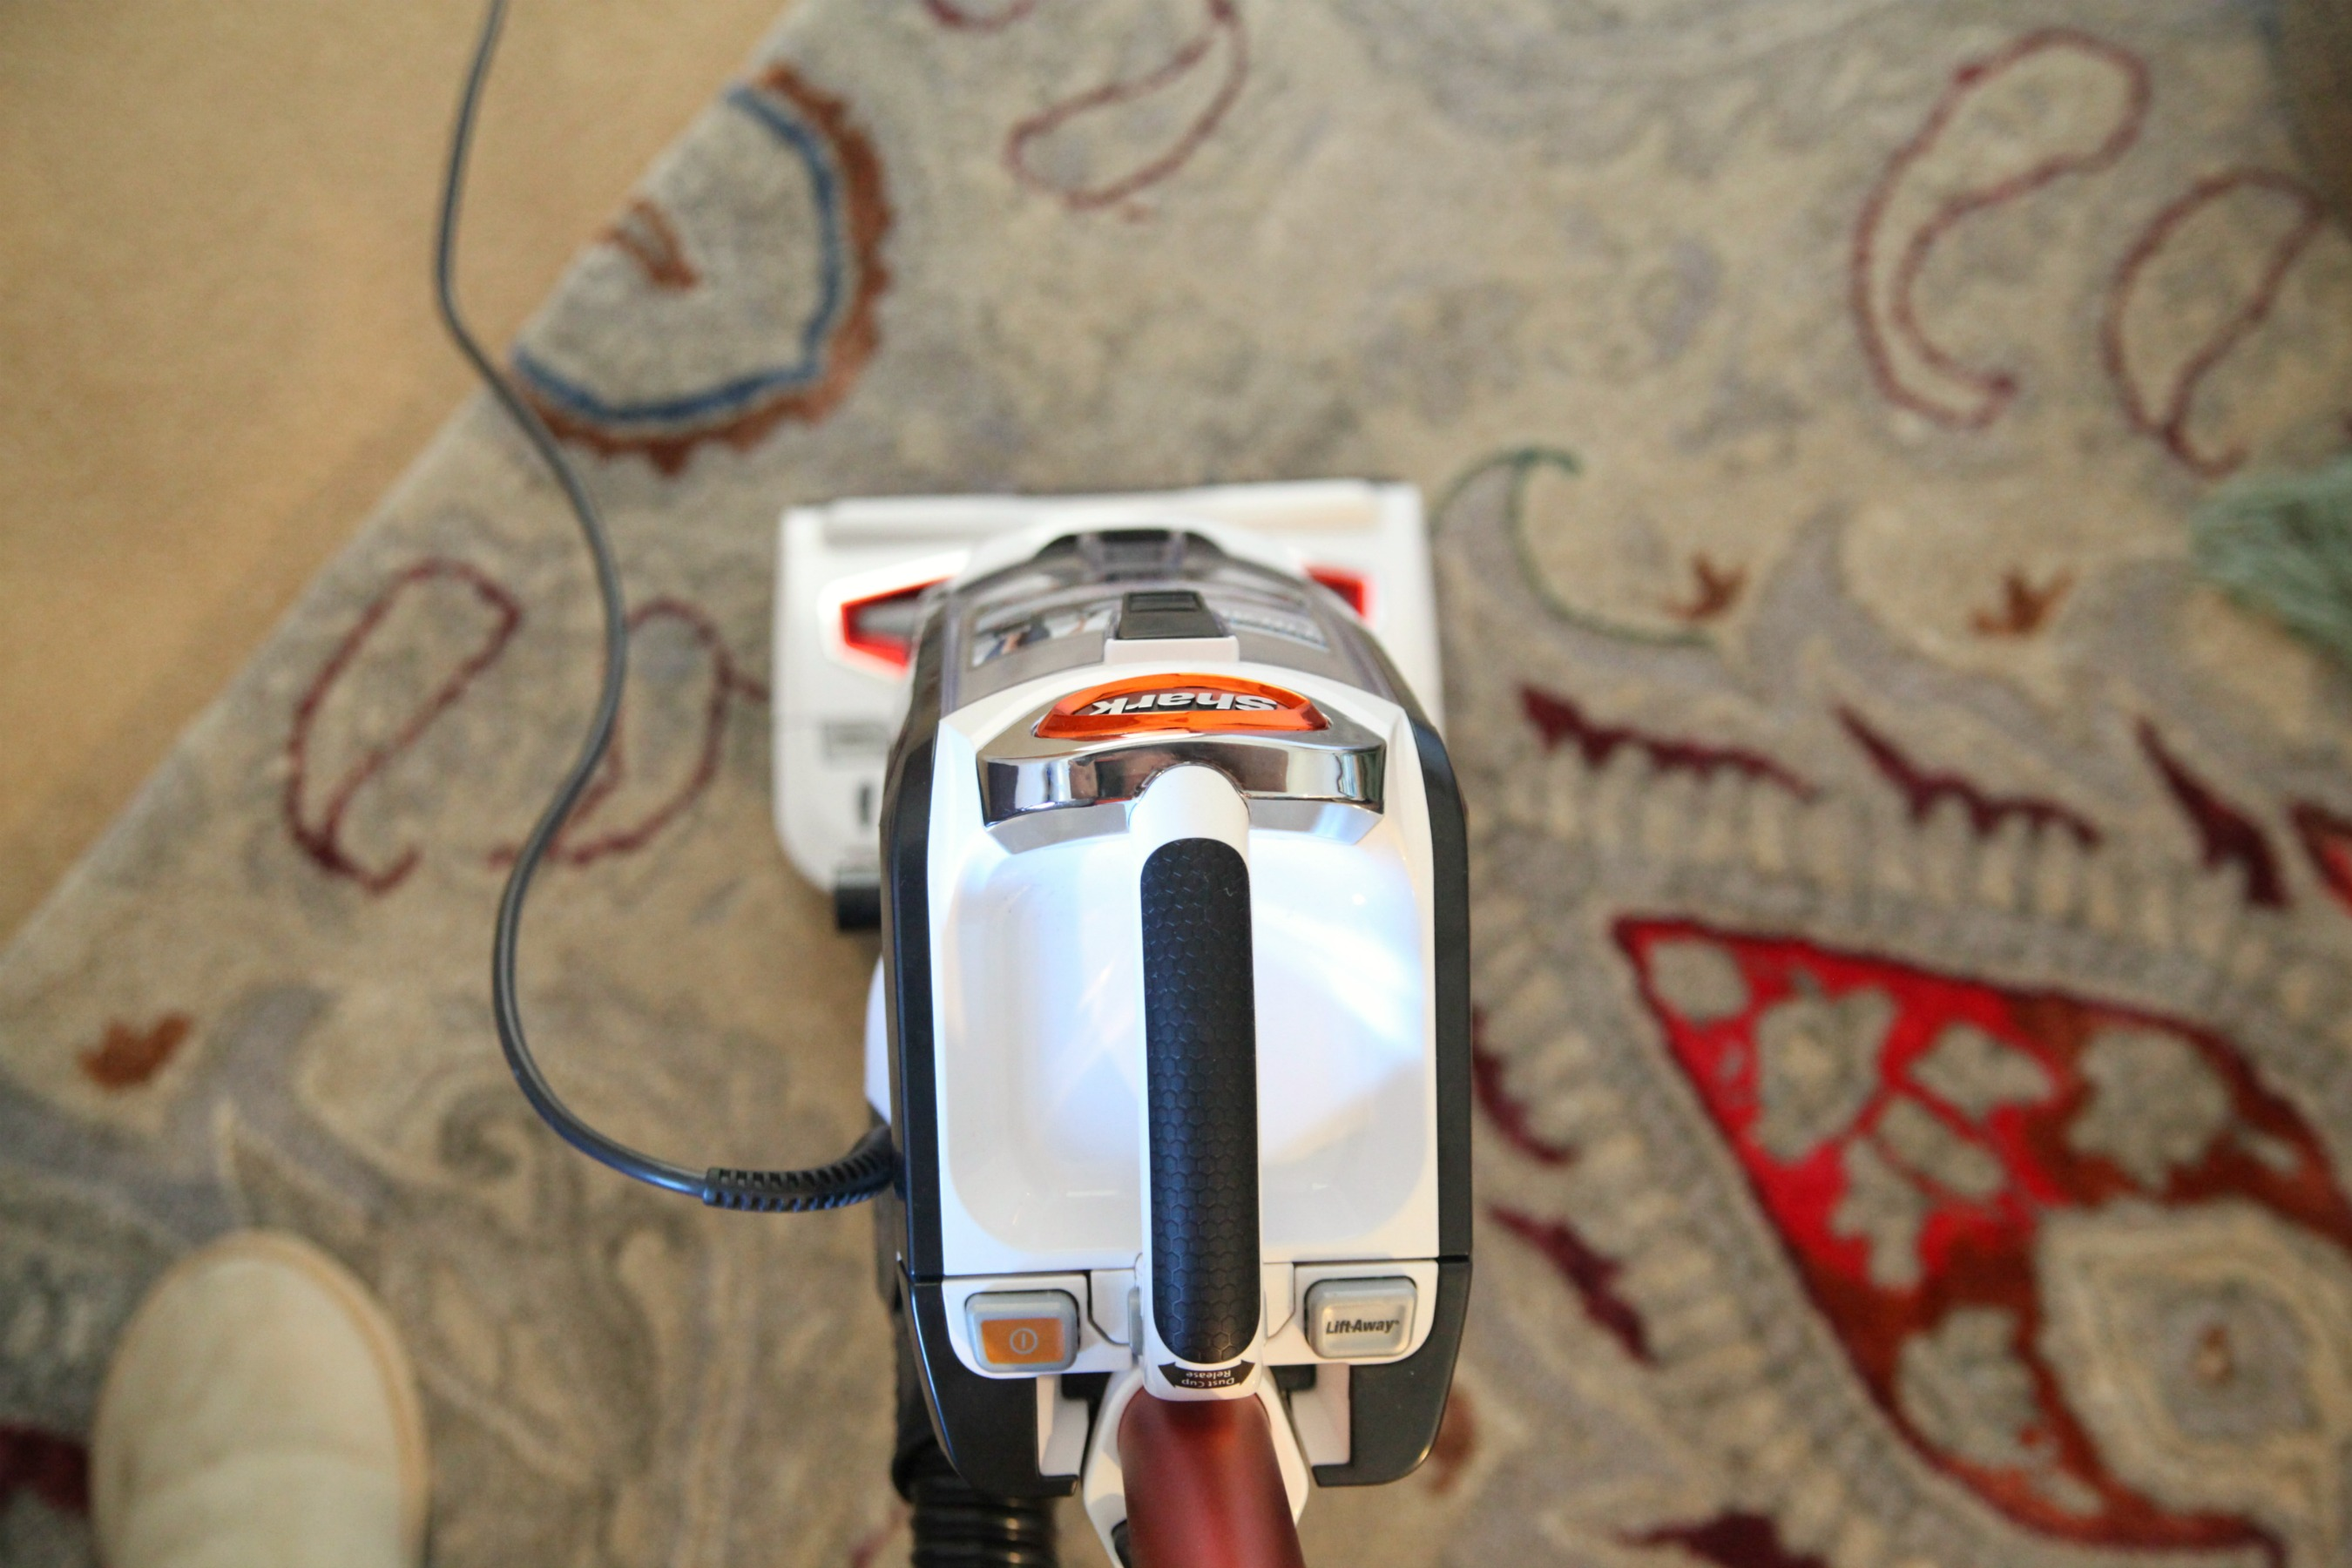 The Shark DuoClean easily tackles carpets and hard floors alike